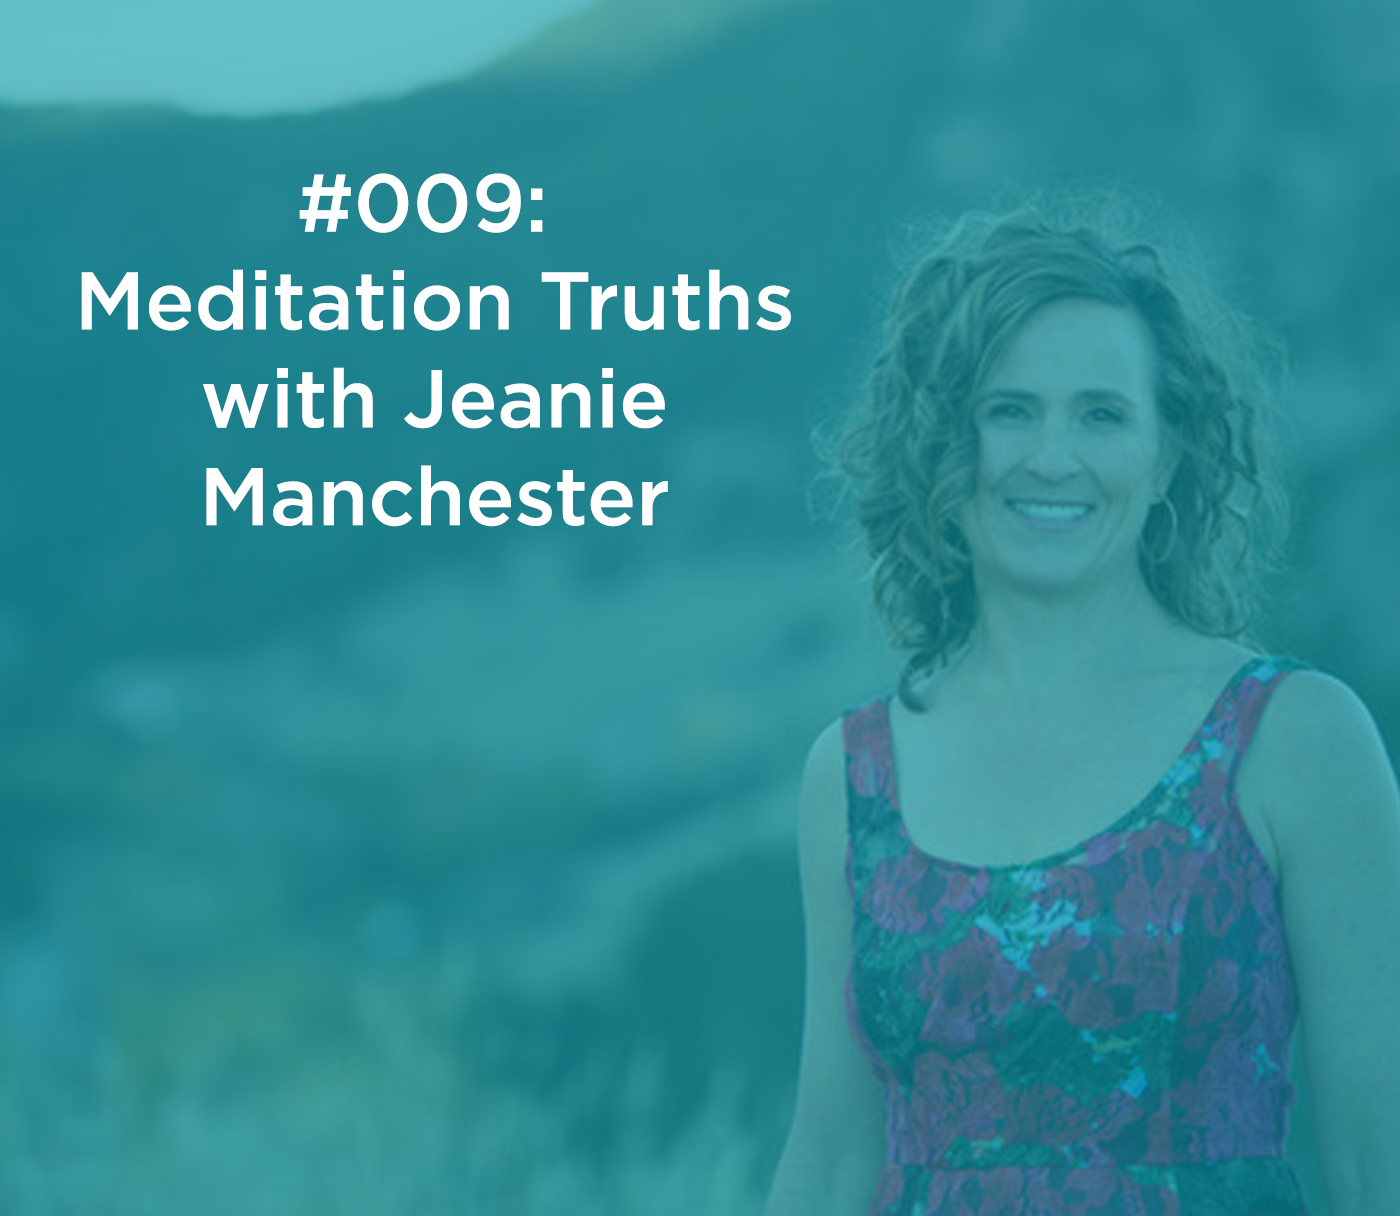 Meditation Truths with Jeanie Manchester